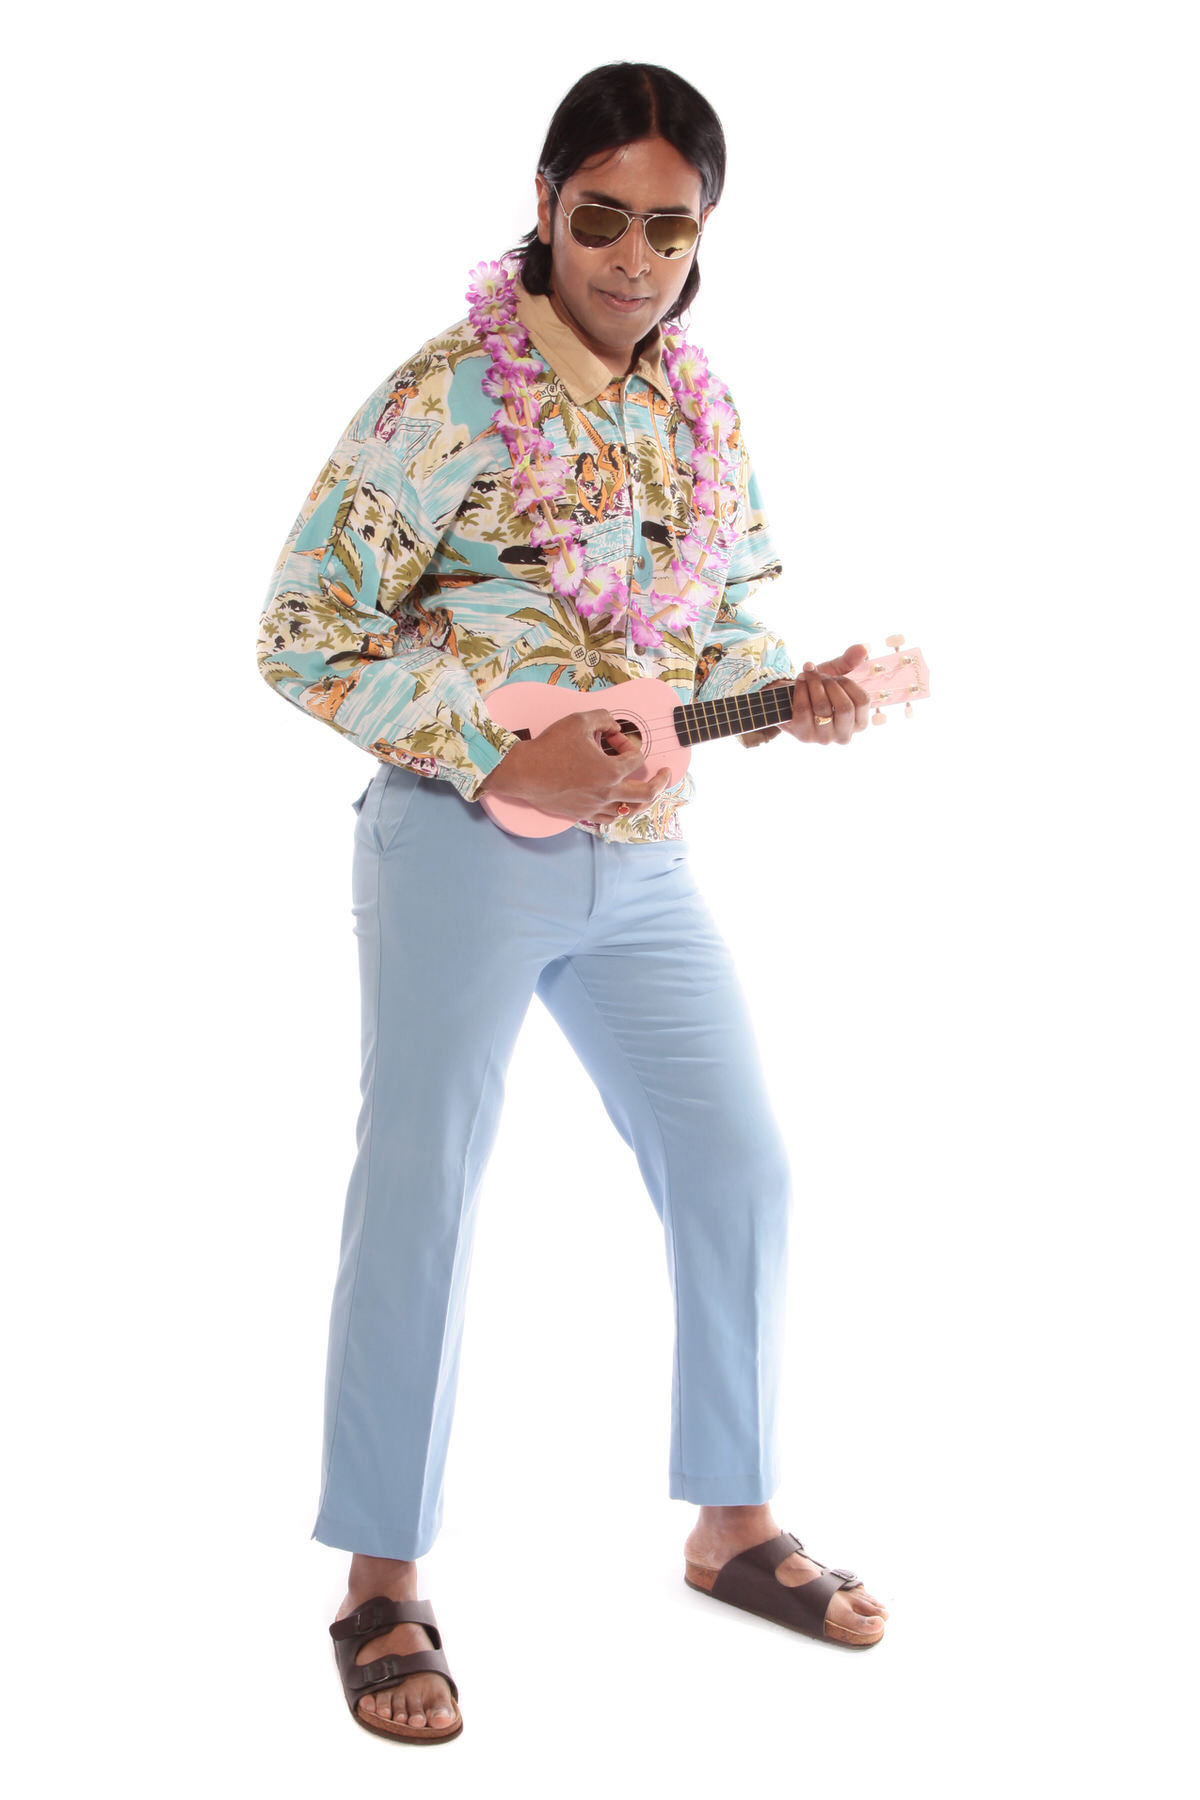 HAWAIIAN ELVIS COSTUME W GENUINE 50s BOMBER JACKET